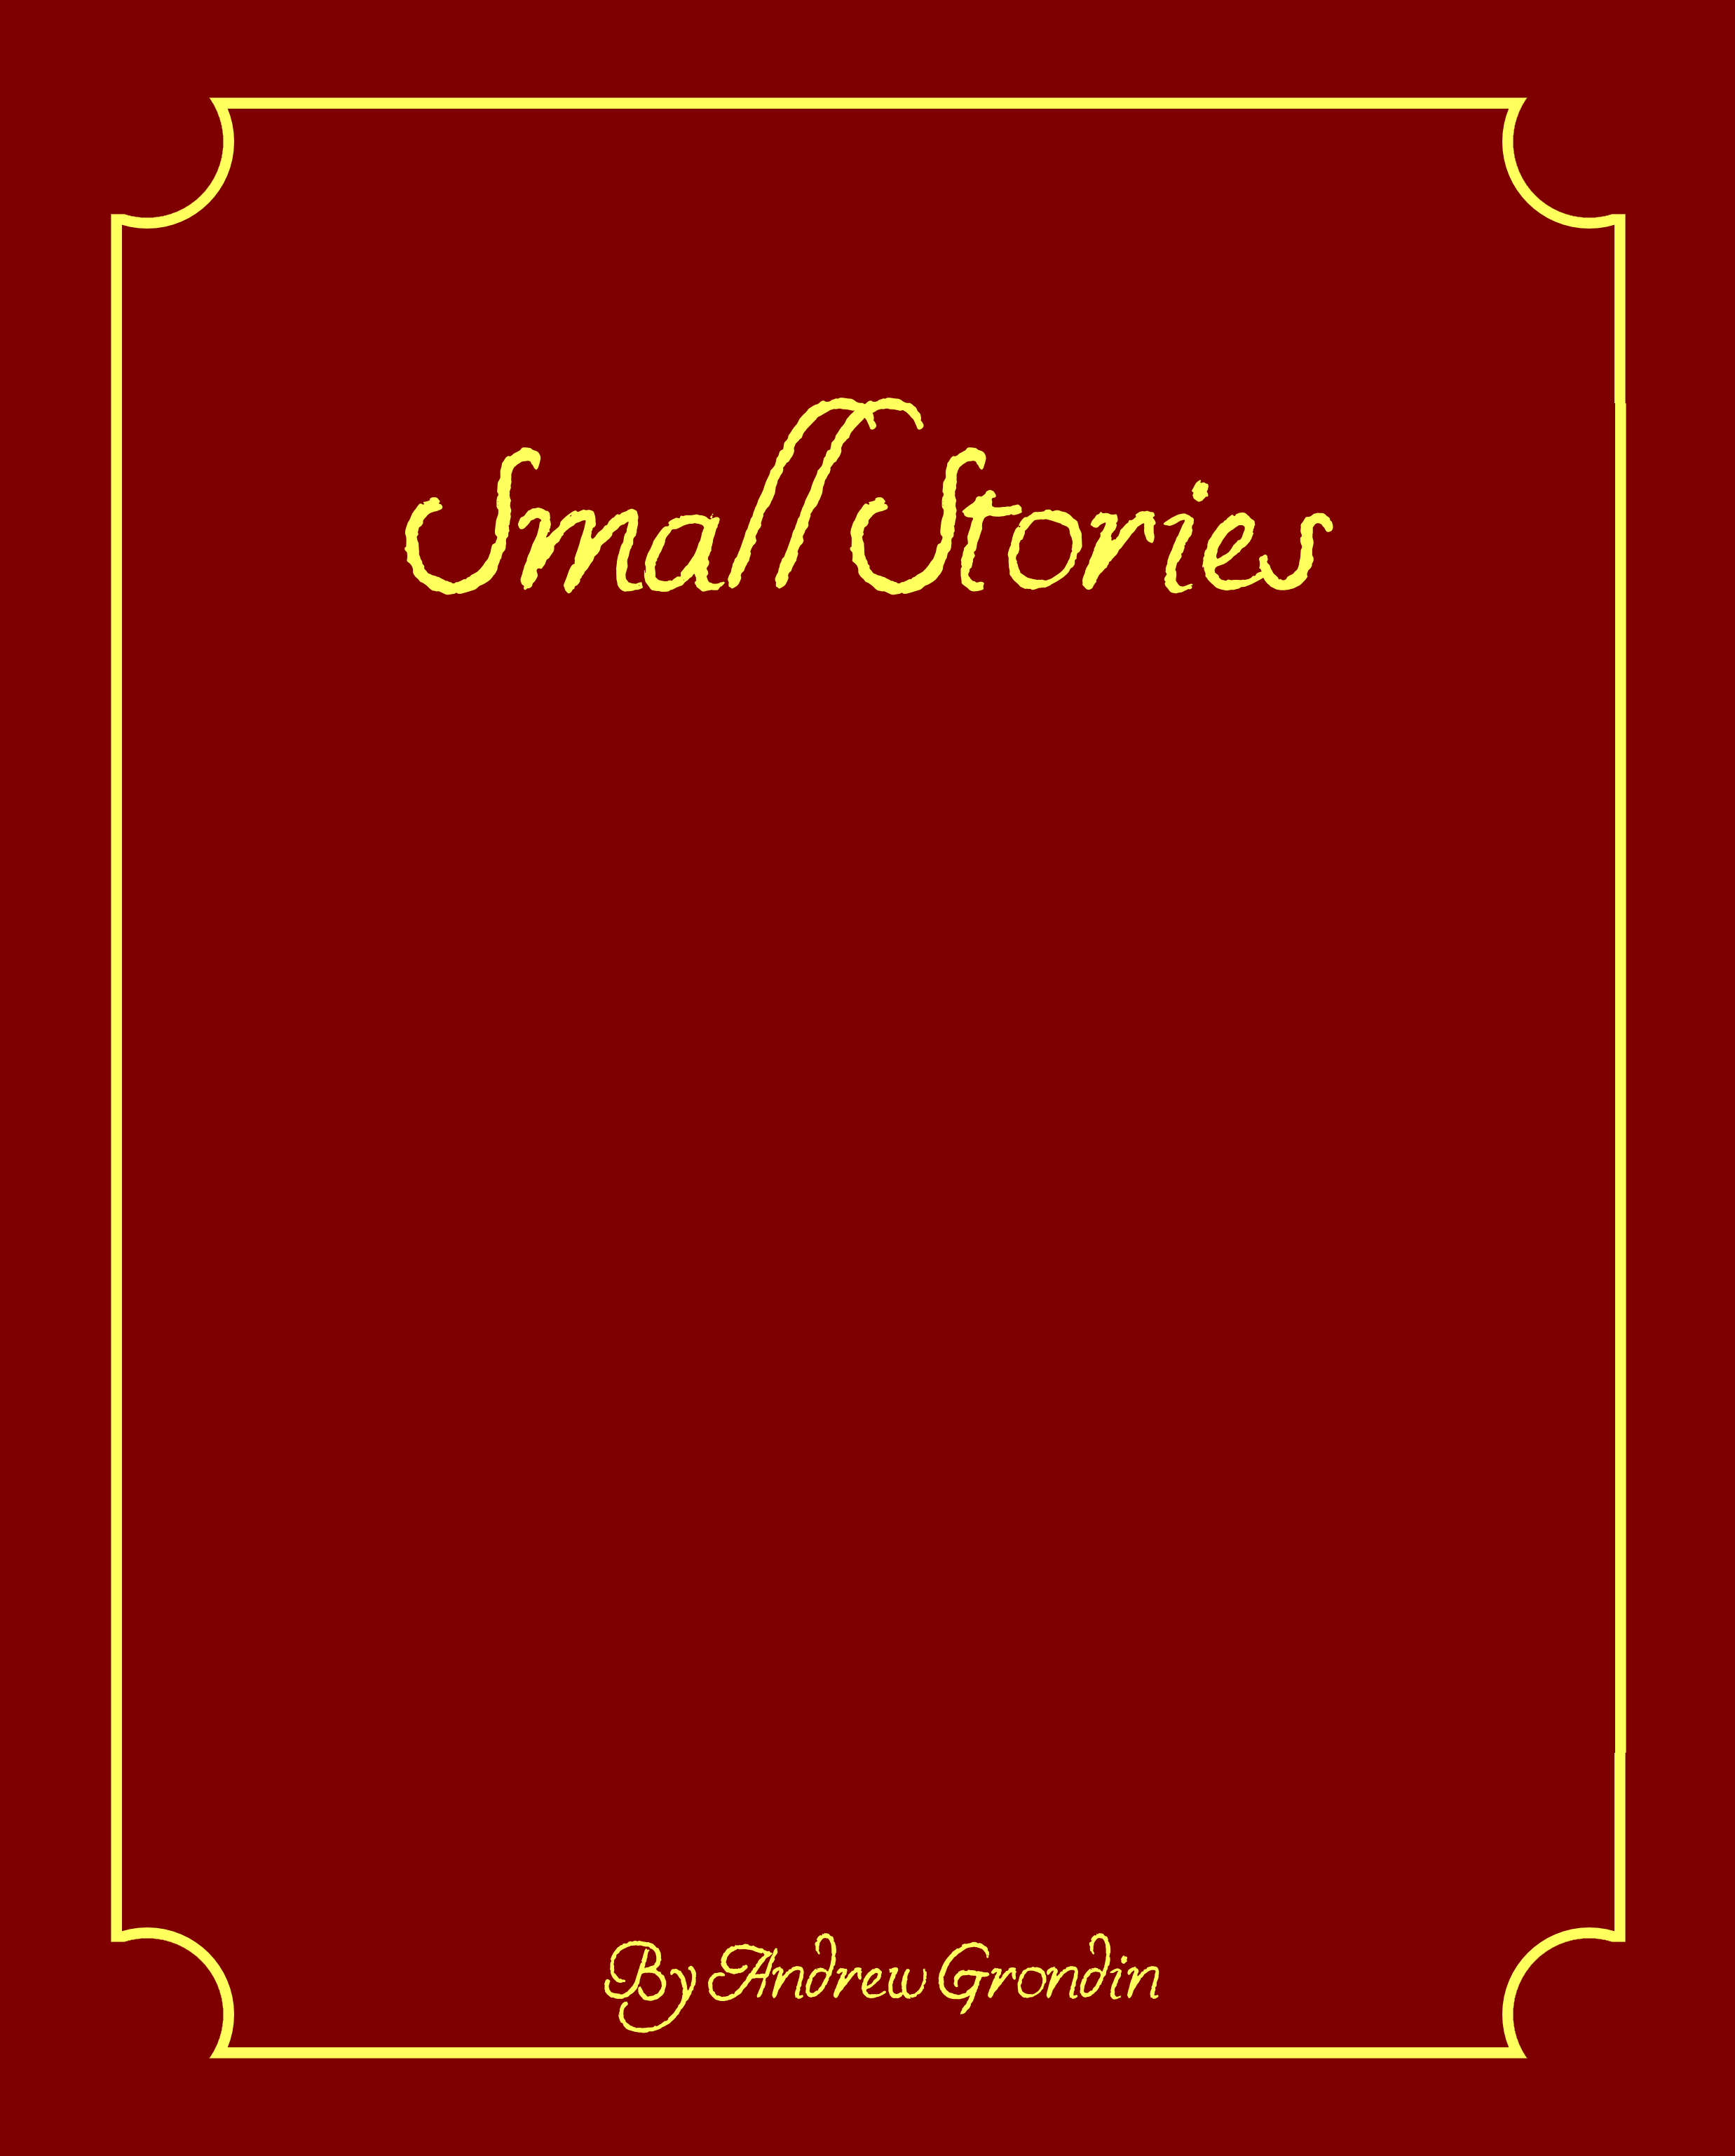 Small Stories Cover